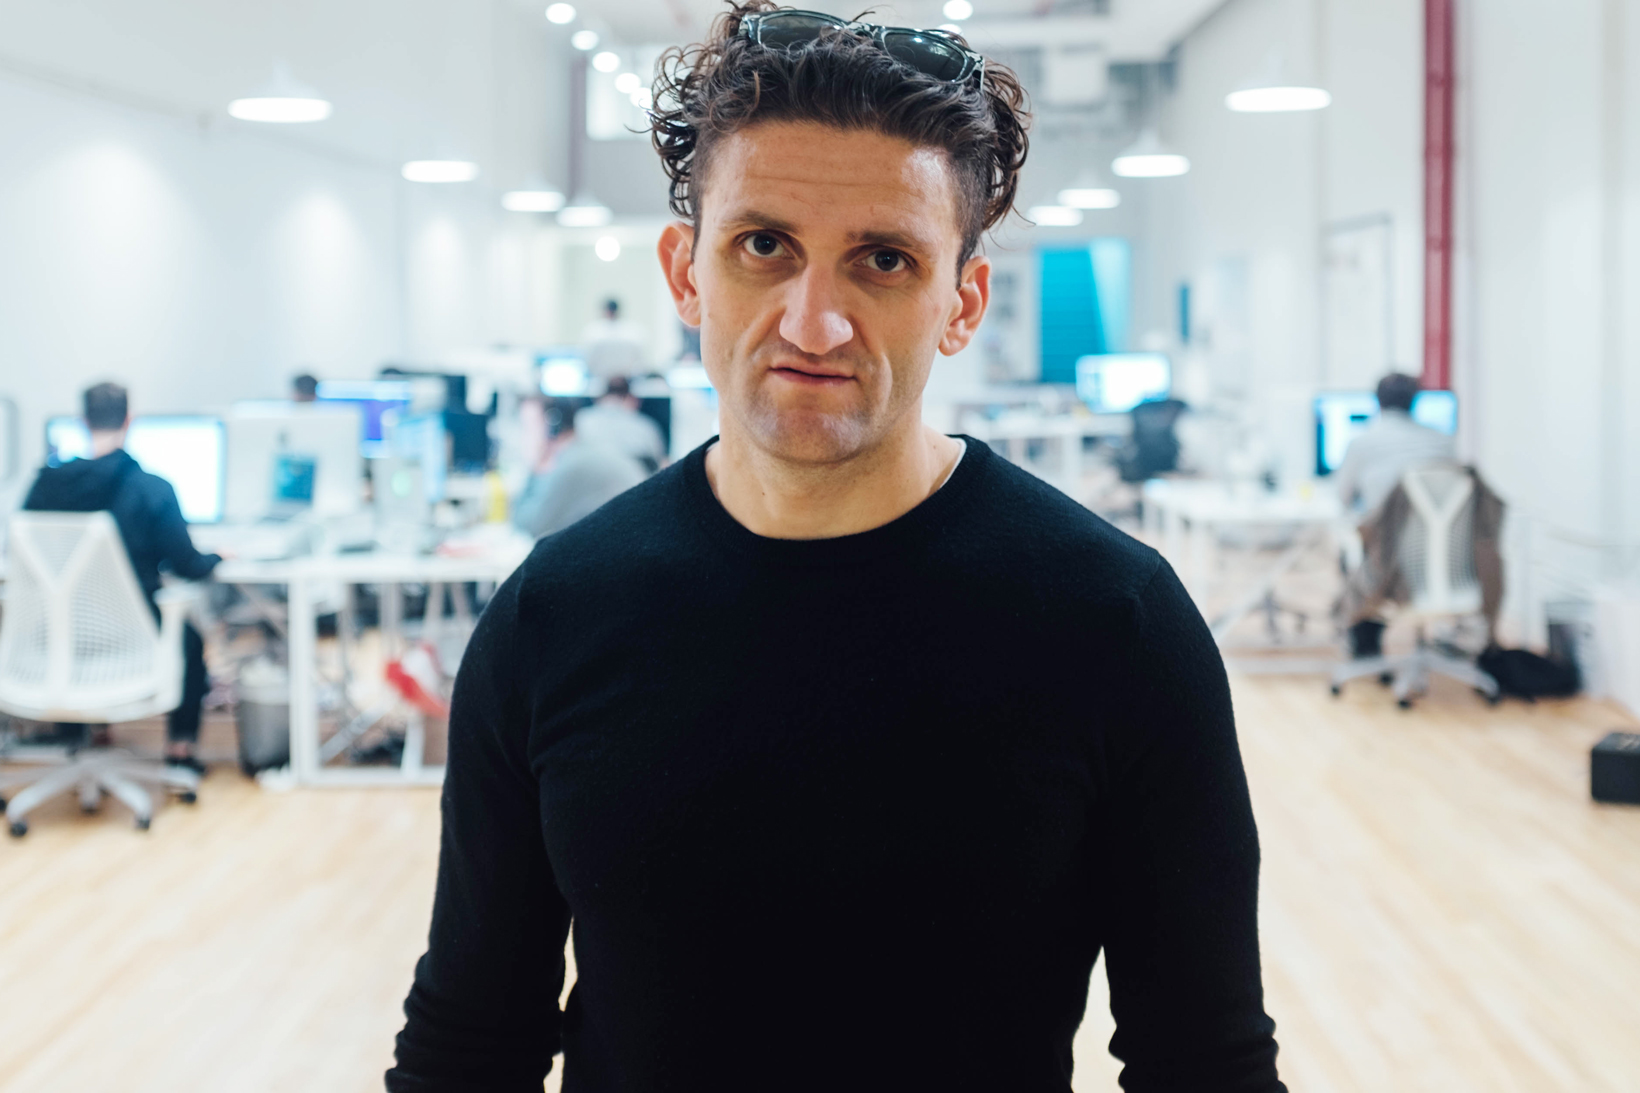 CNN Enlists Casey Neistat for Viral Video Platform | HYPEBEAST